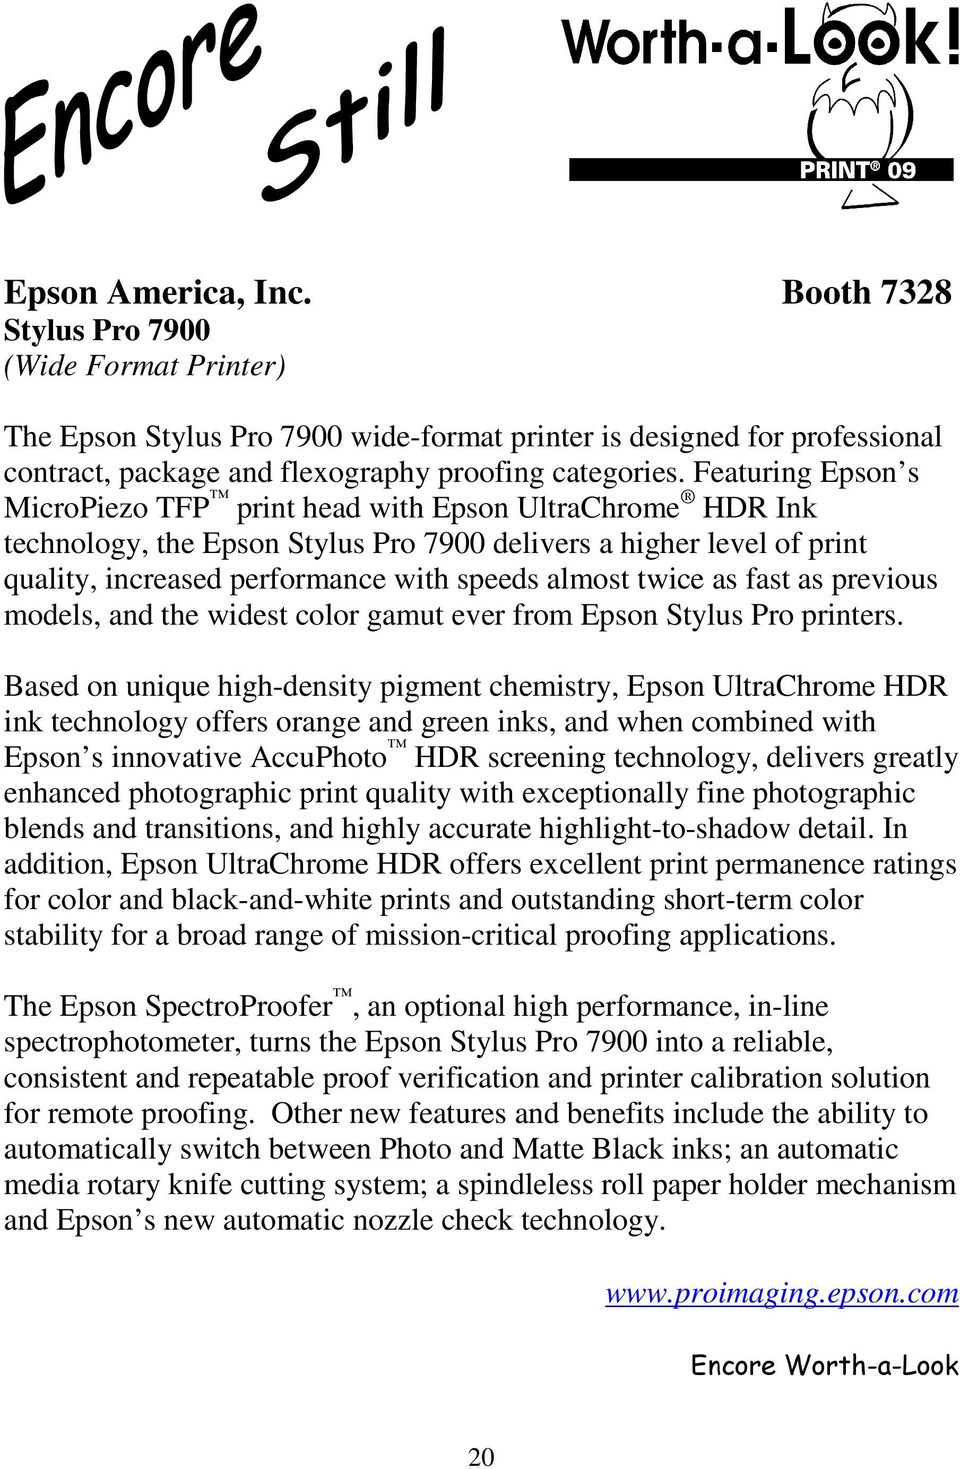 twice as fast as previous models, and the widest color gamut ever from Epson Stylus Pro printers.